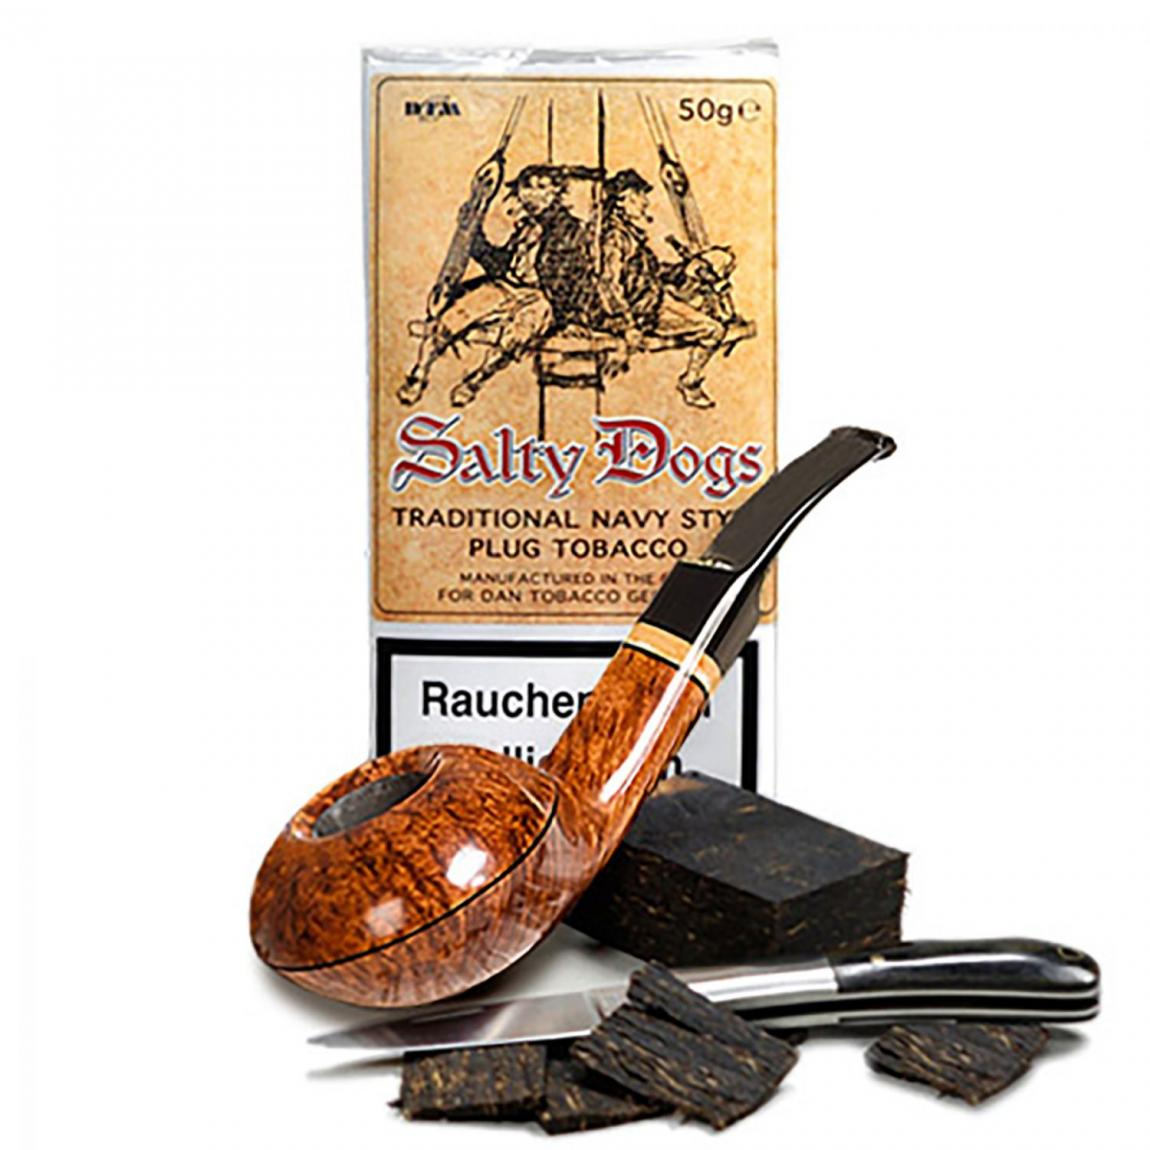 Salty Dogs »Plug Tobacco« 50g Pouch